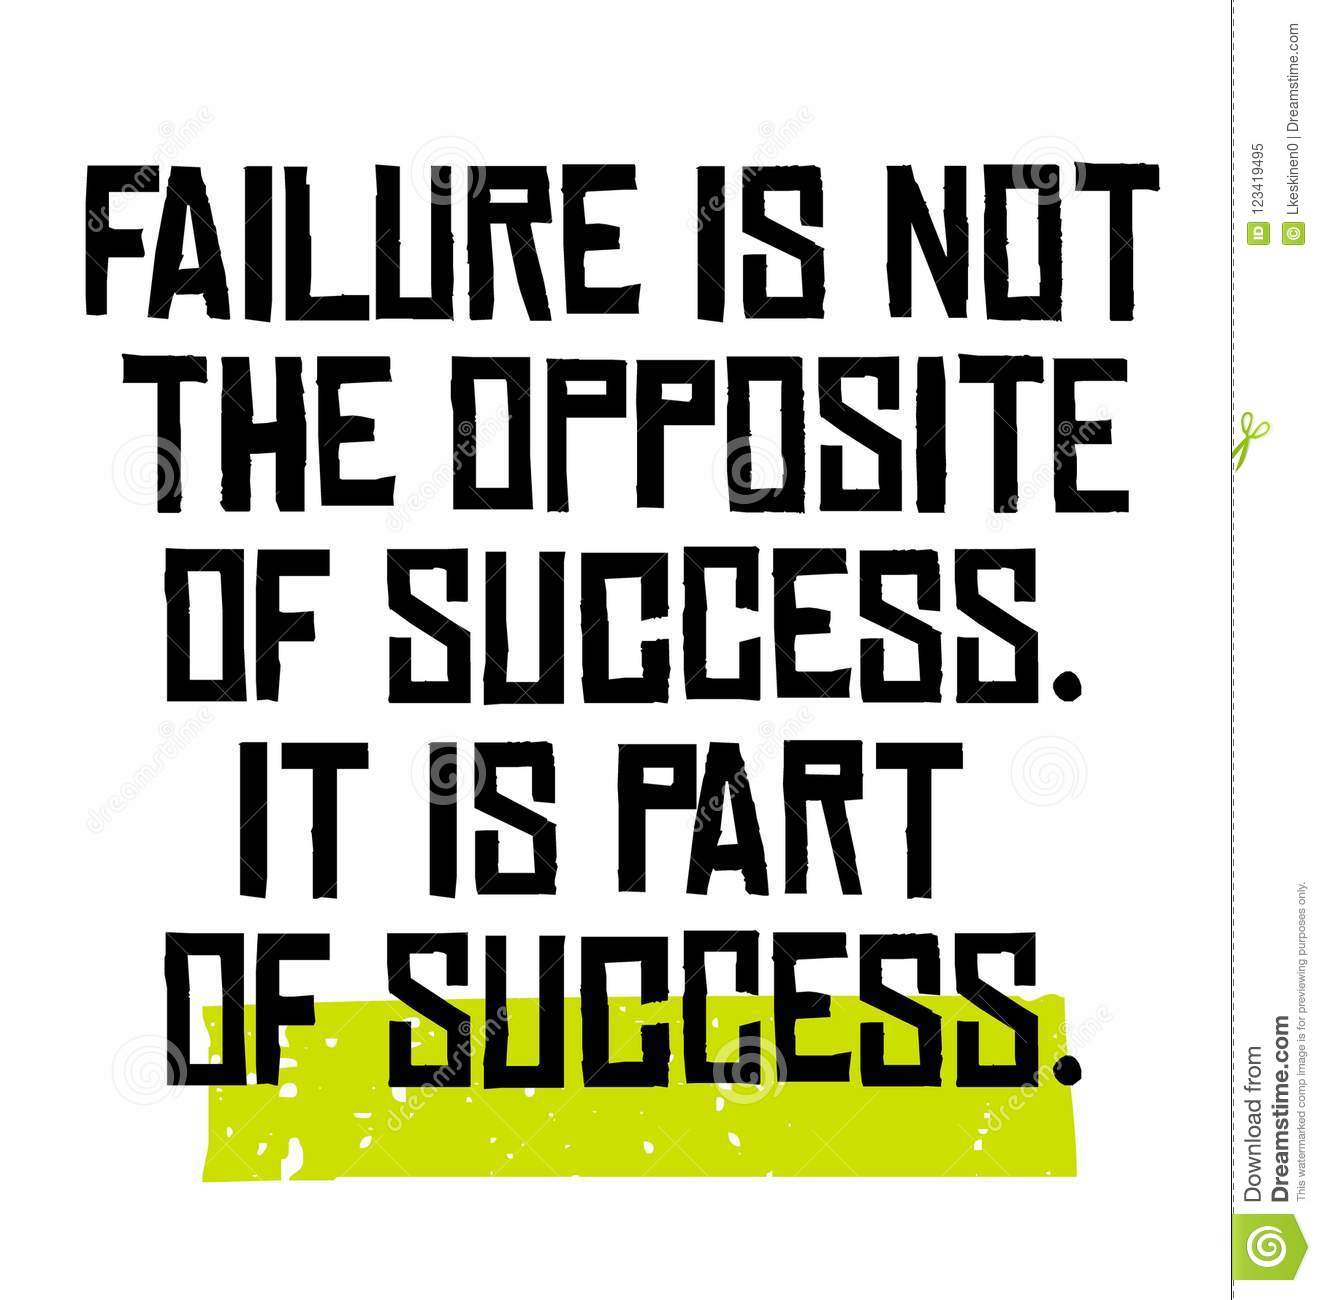 Motivational Quotes About Success: Failure Is Not The Opposite Of Success It Is Part Of